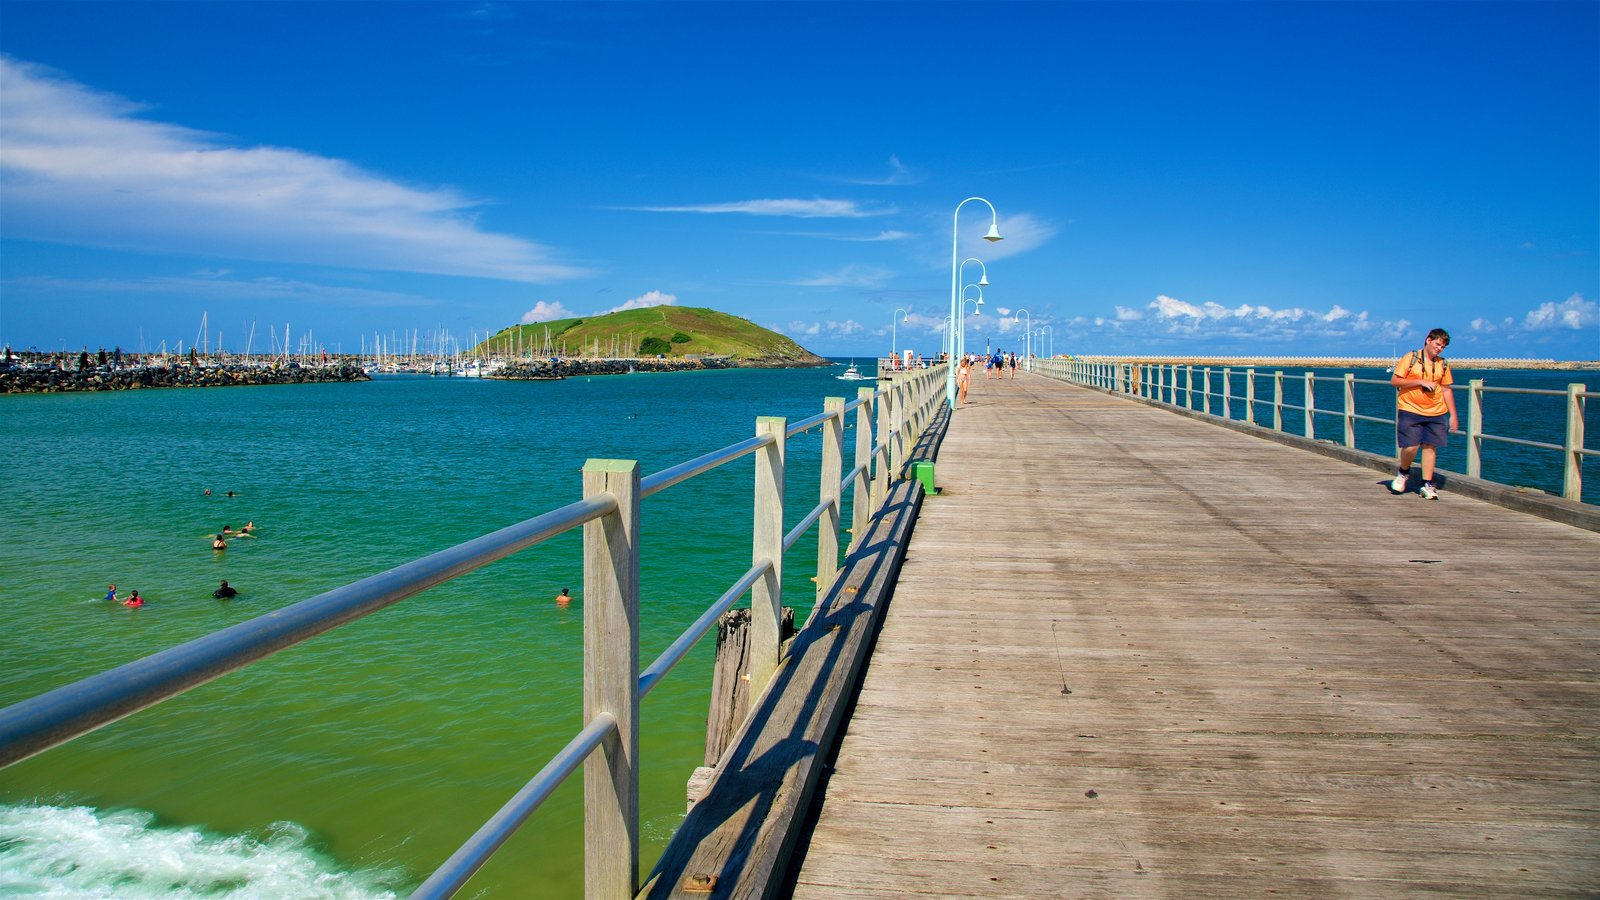 Coffs Harbour which includes swimming and general coastal views as well as a small group of people